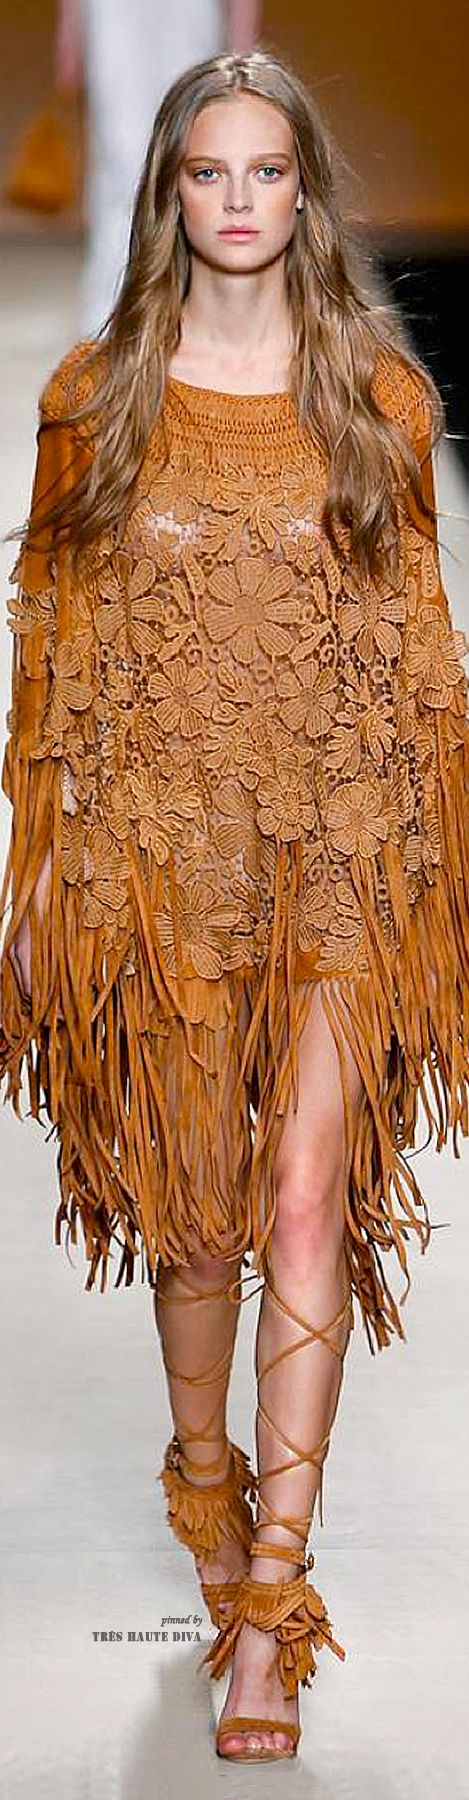 Alberta Ferretti flowers & fringe native tribal hippie bohemian fantasy fashion #UNIQUE_WOMENS_FASHION